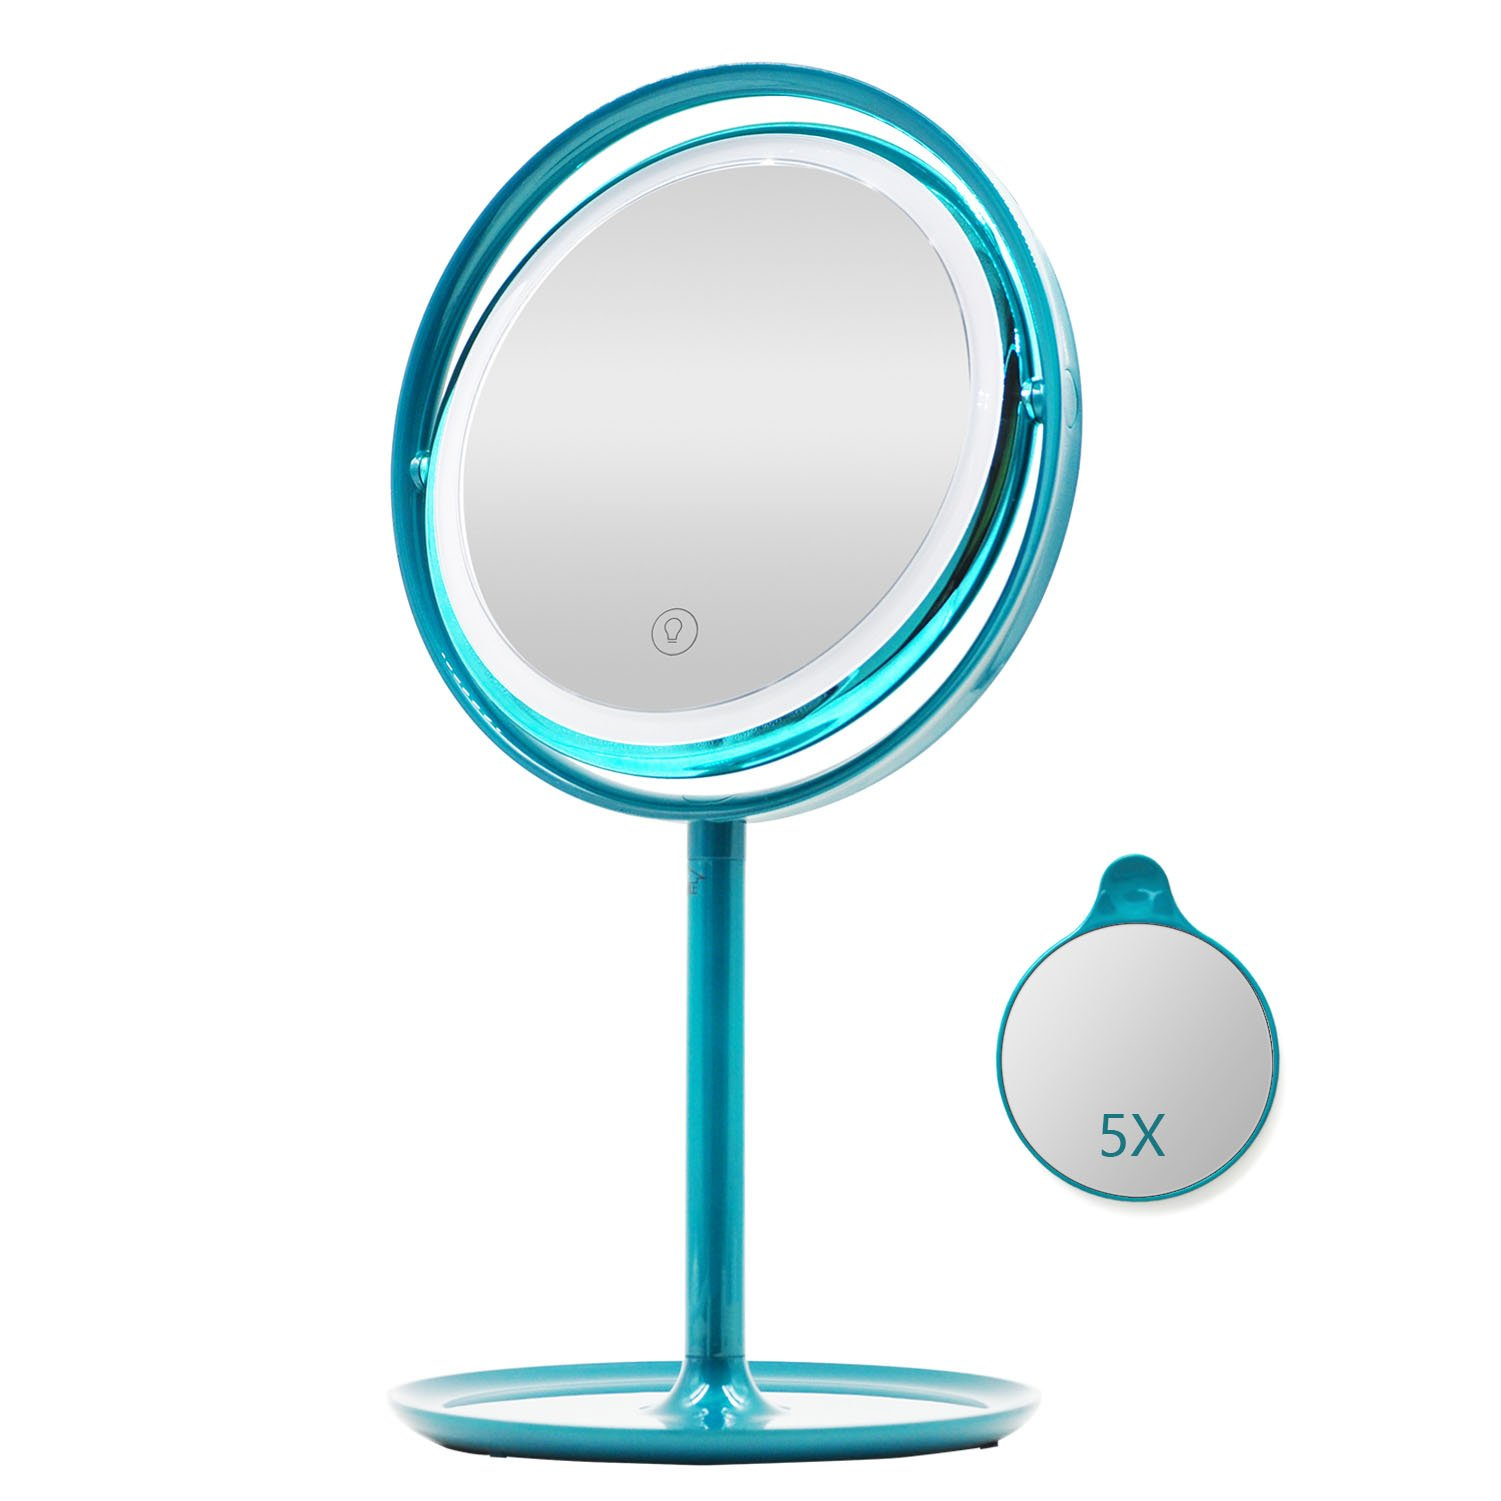 UPHAN U7 Surgical Grade Lighted Makeup Mirrors, 7 inch Luxury Dual Light Color Dimming Light with 5X Detail Mirror, Malachite green ¡ (Surgical Grade)